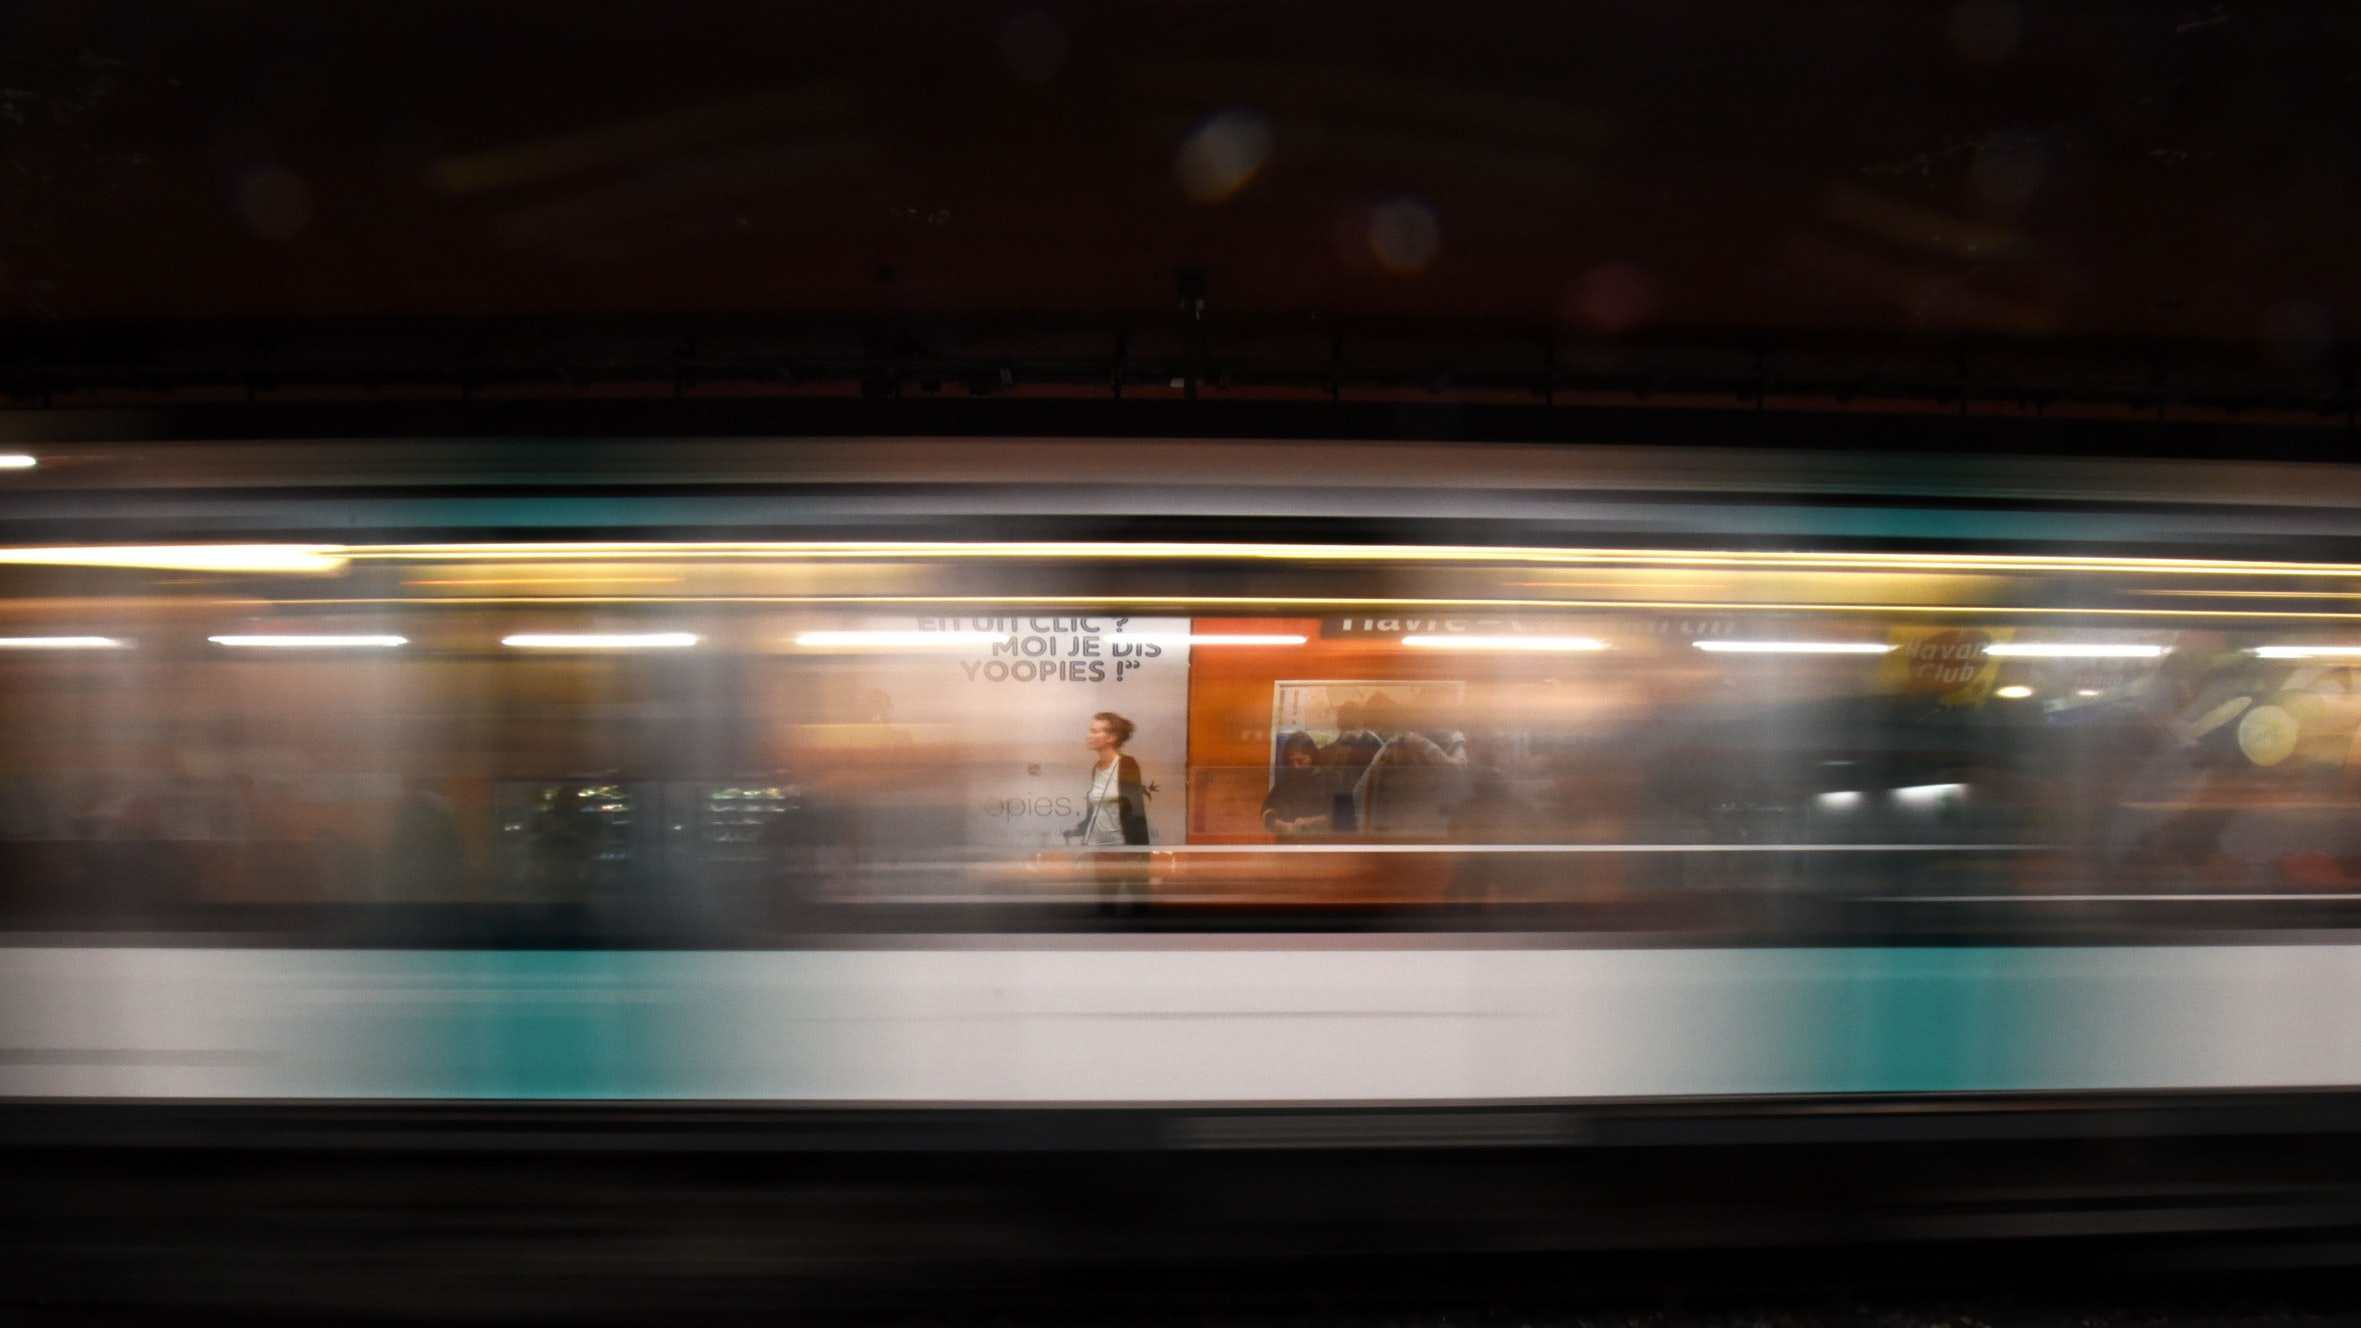 A long-exposure shot of a moving subway train at a platform